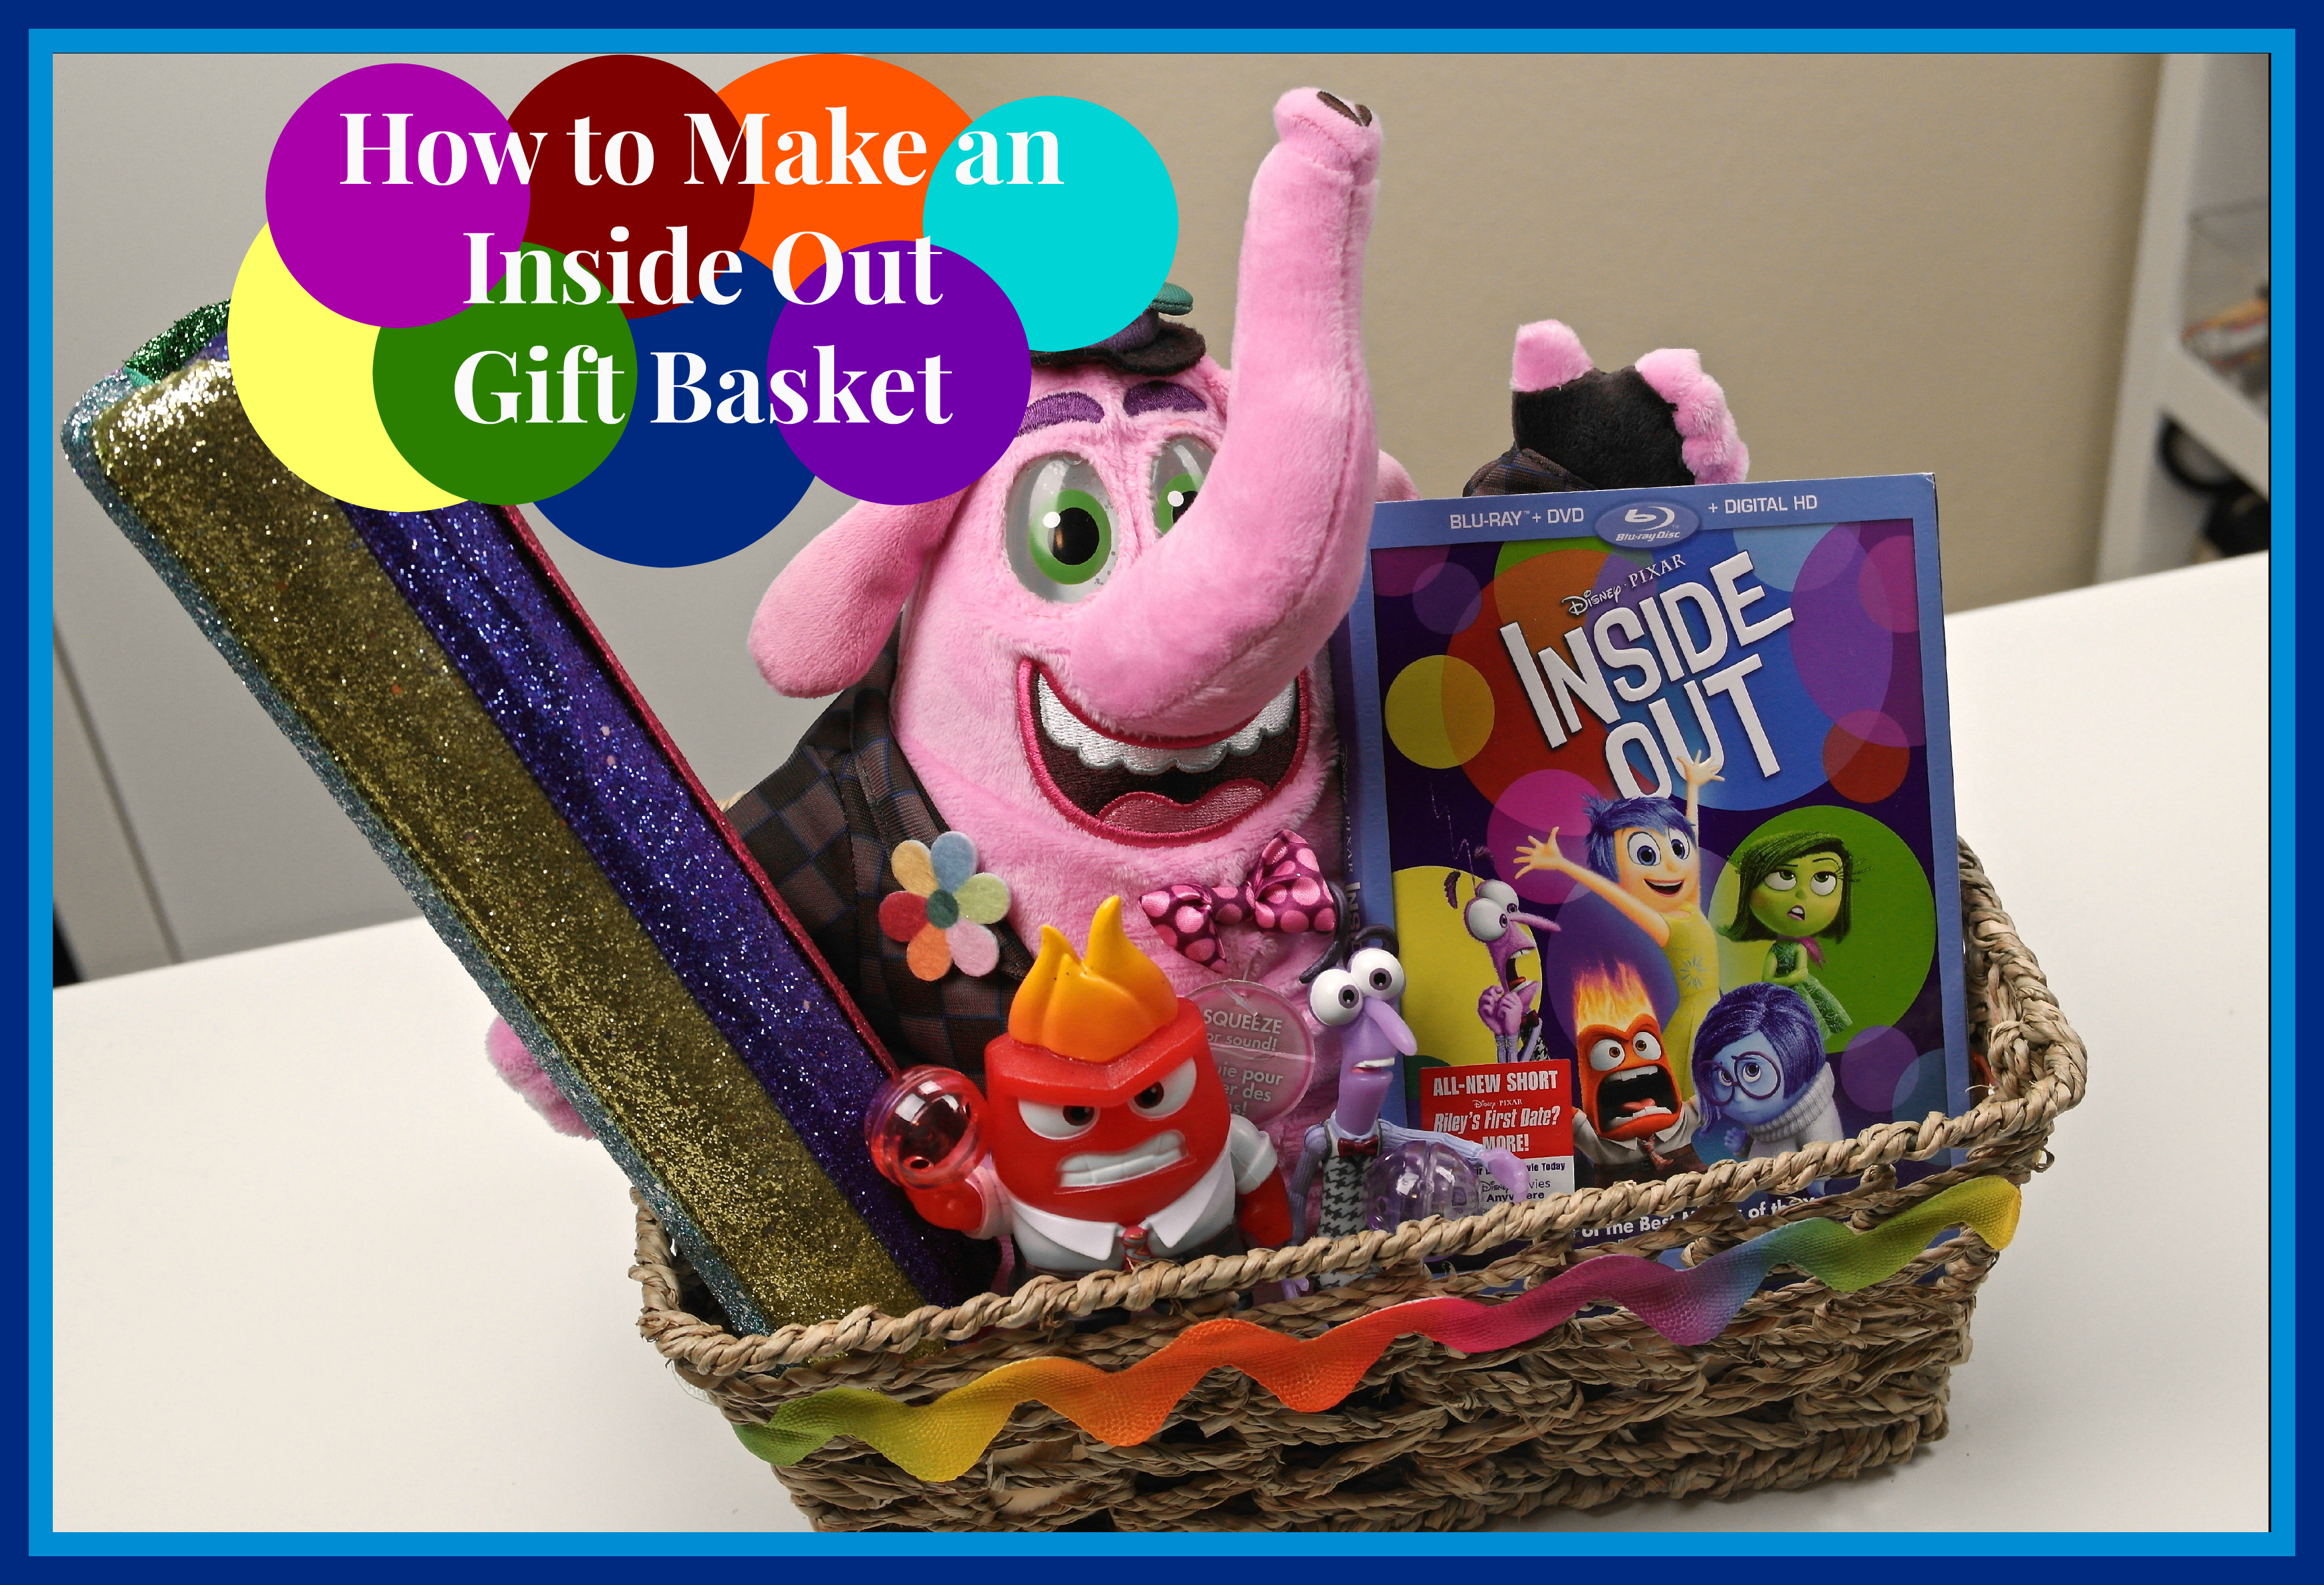 #InsideOutEmotions #DIY #Gifts #HolidayGiftGuide #CollectiveBias #ad